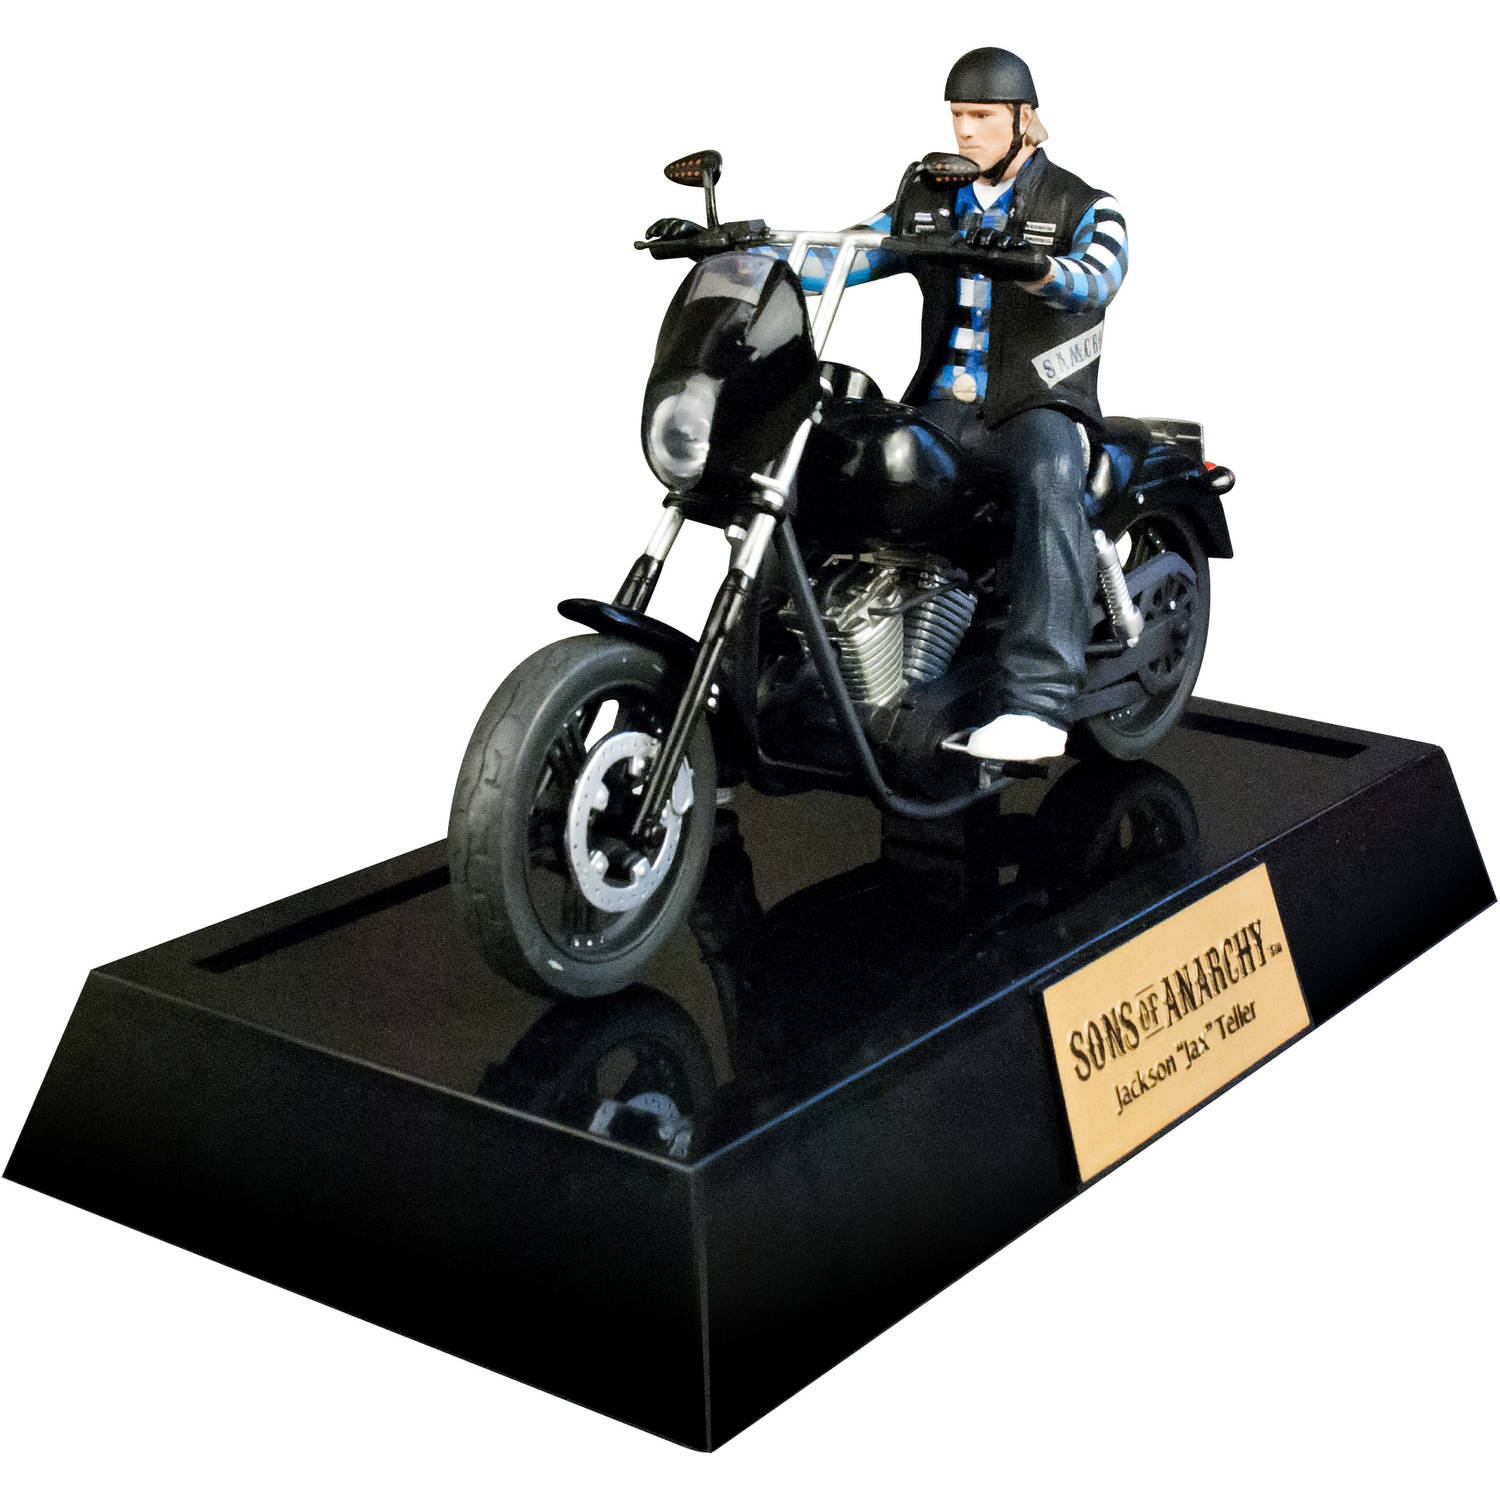 "Sons of Anarchy Deluxe Jax Teller 6"" Figure with Bike"